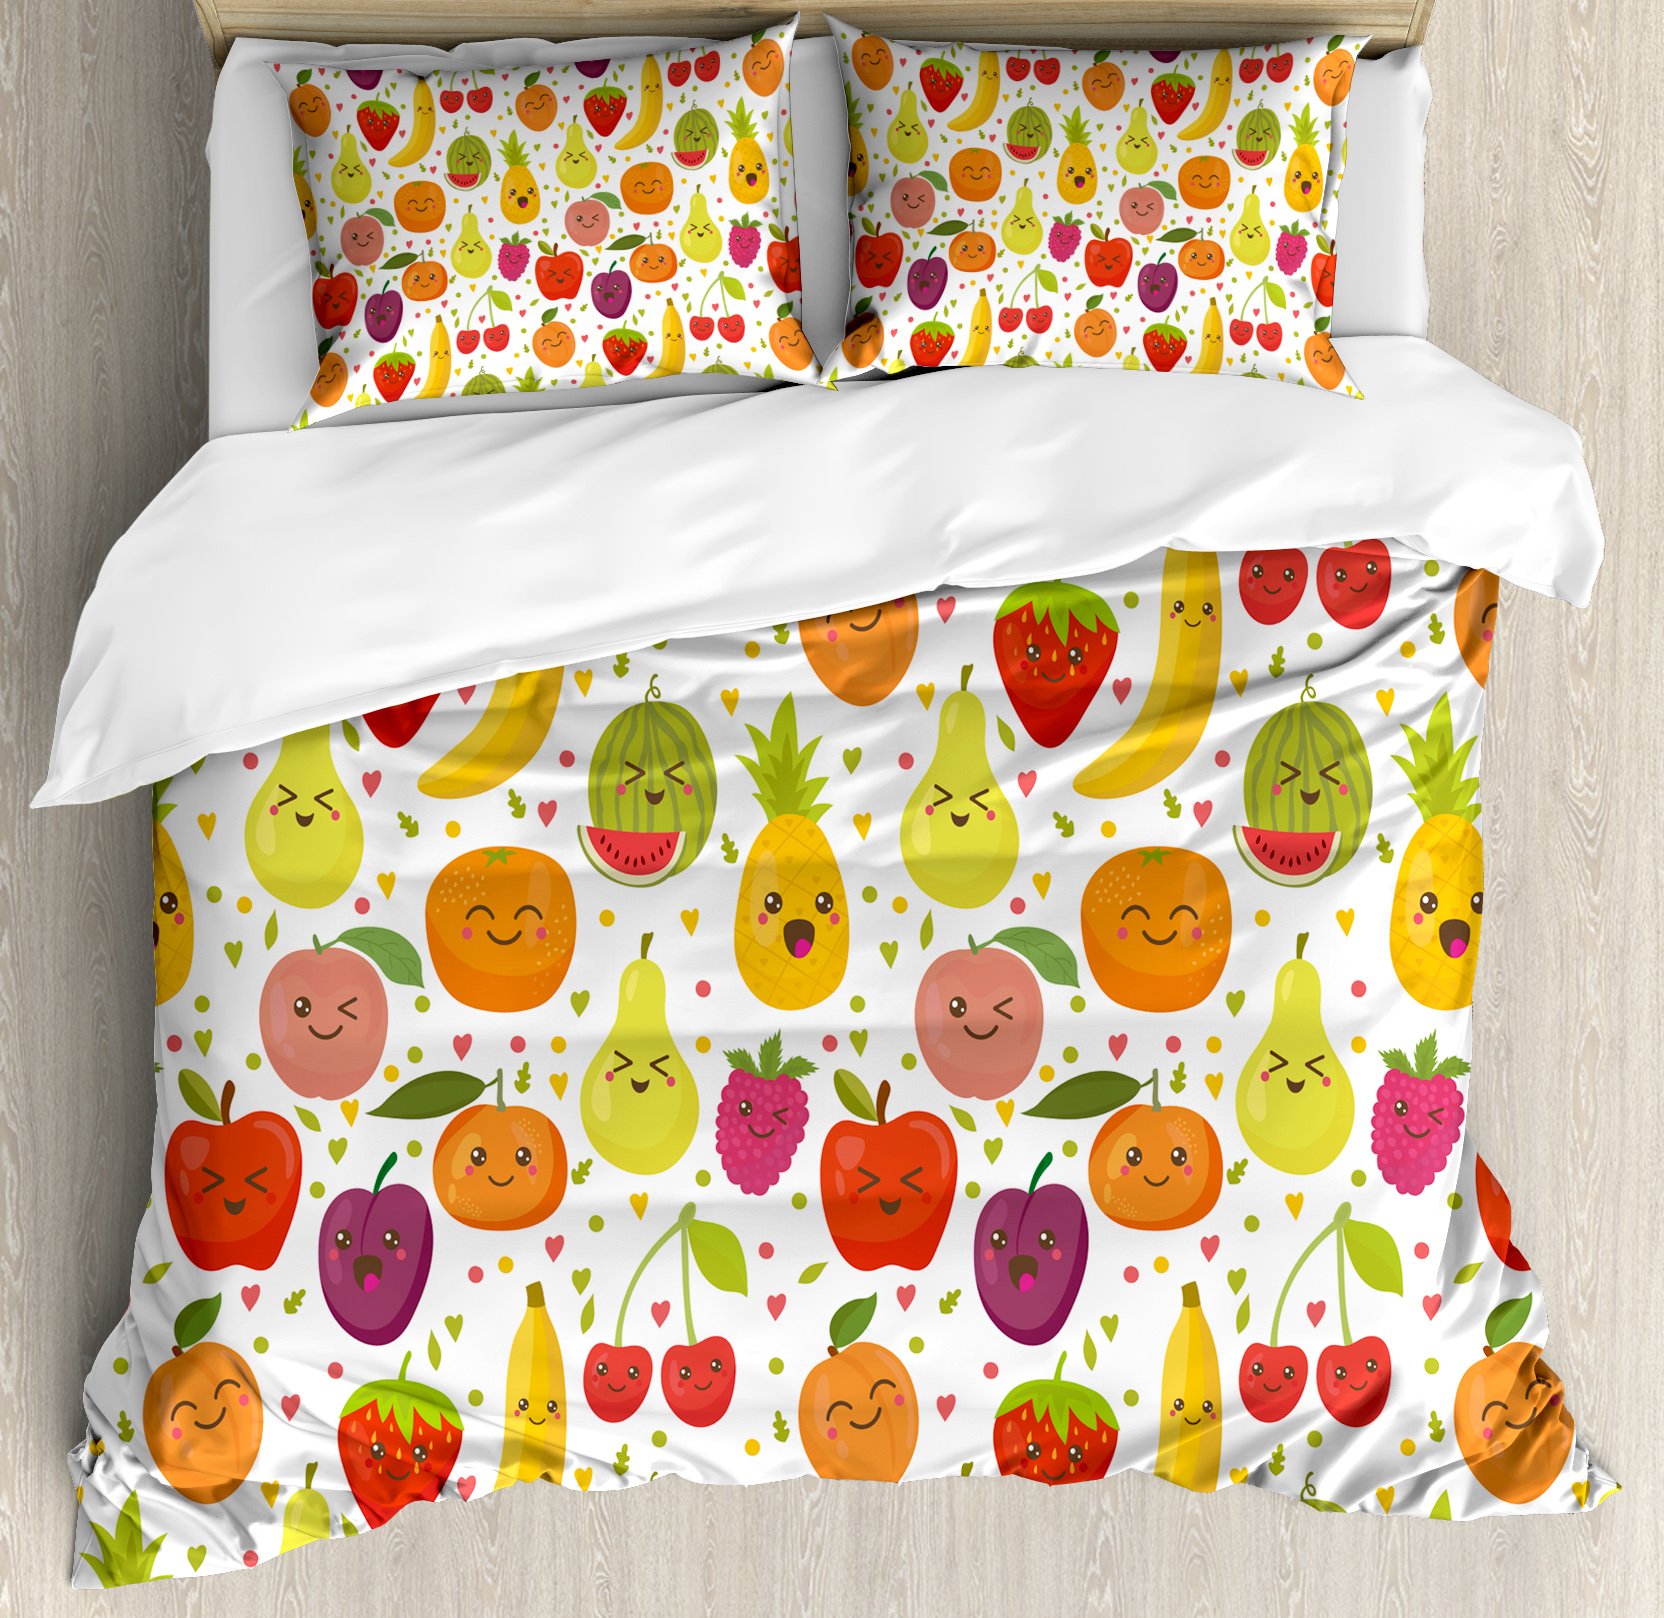 Fruits Queen Size Duvet Cover Set, Smiling Banana Funny Mulberry Happy Apricot Peach... by Kozmos